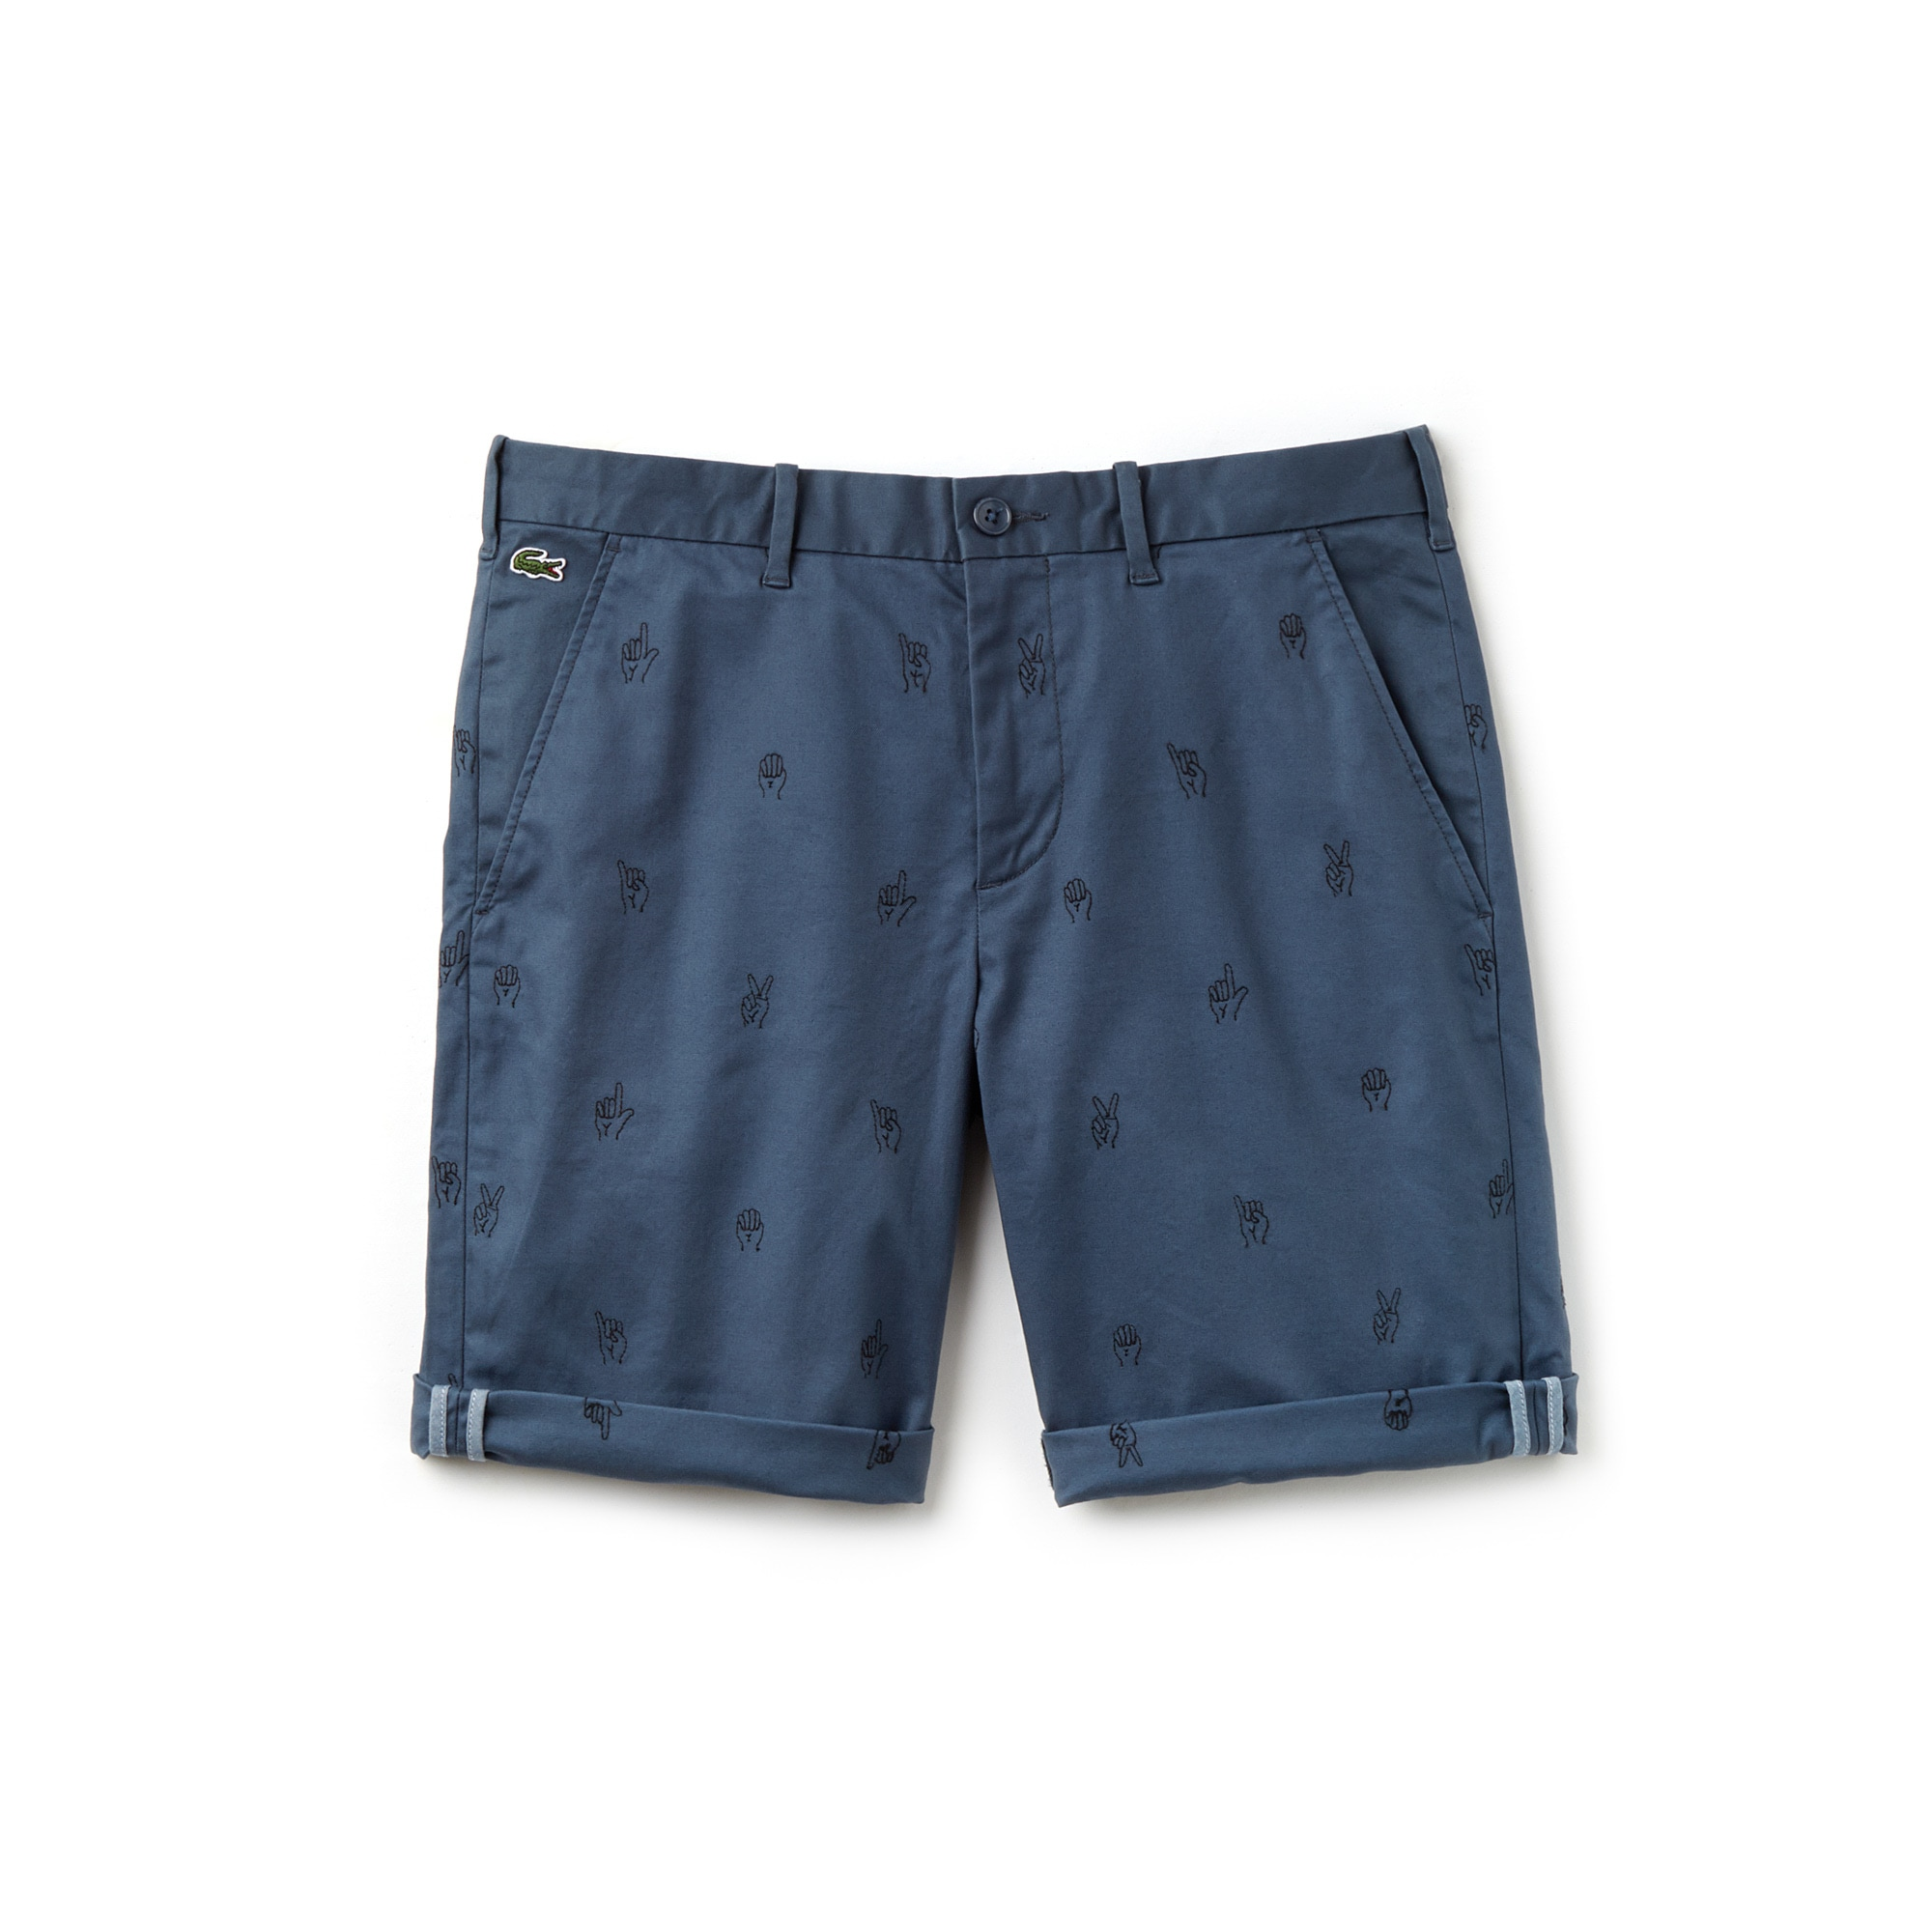 Bermuda Lacoste LIVE in twill di cotone stretch con mini ricami